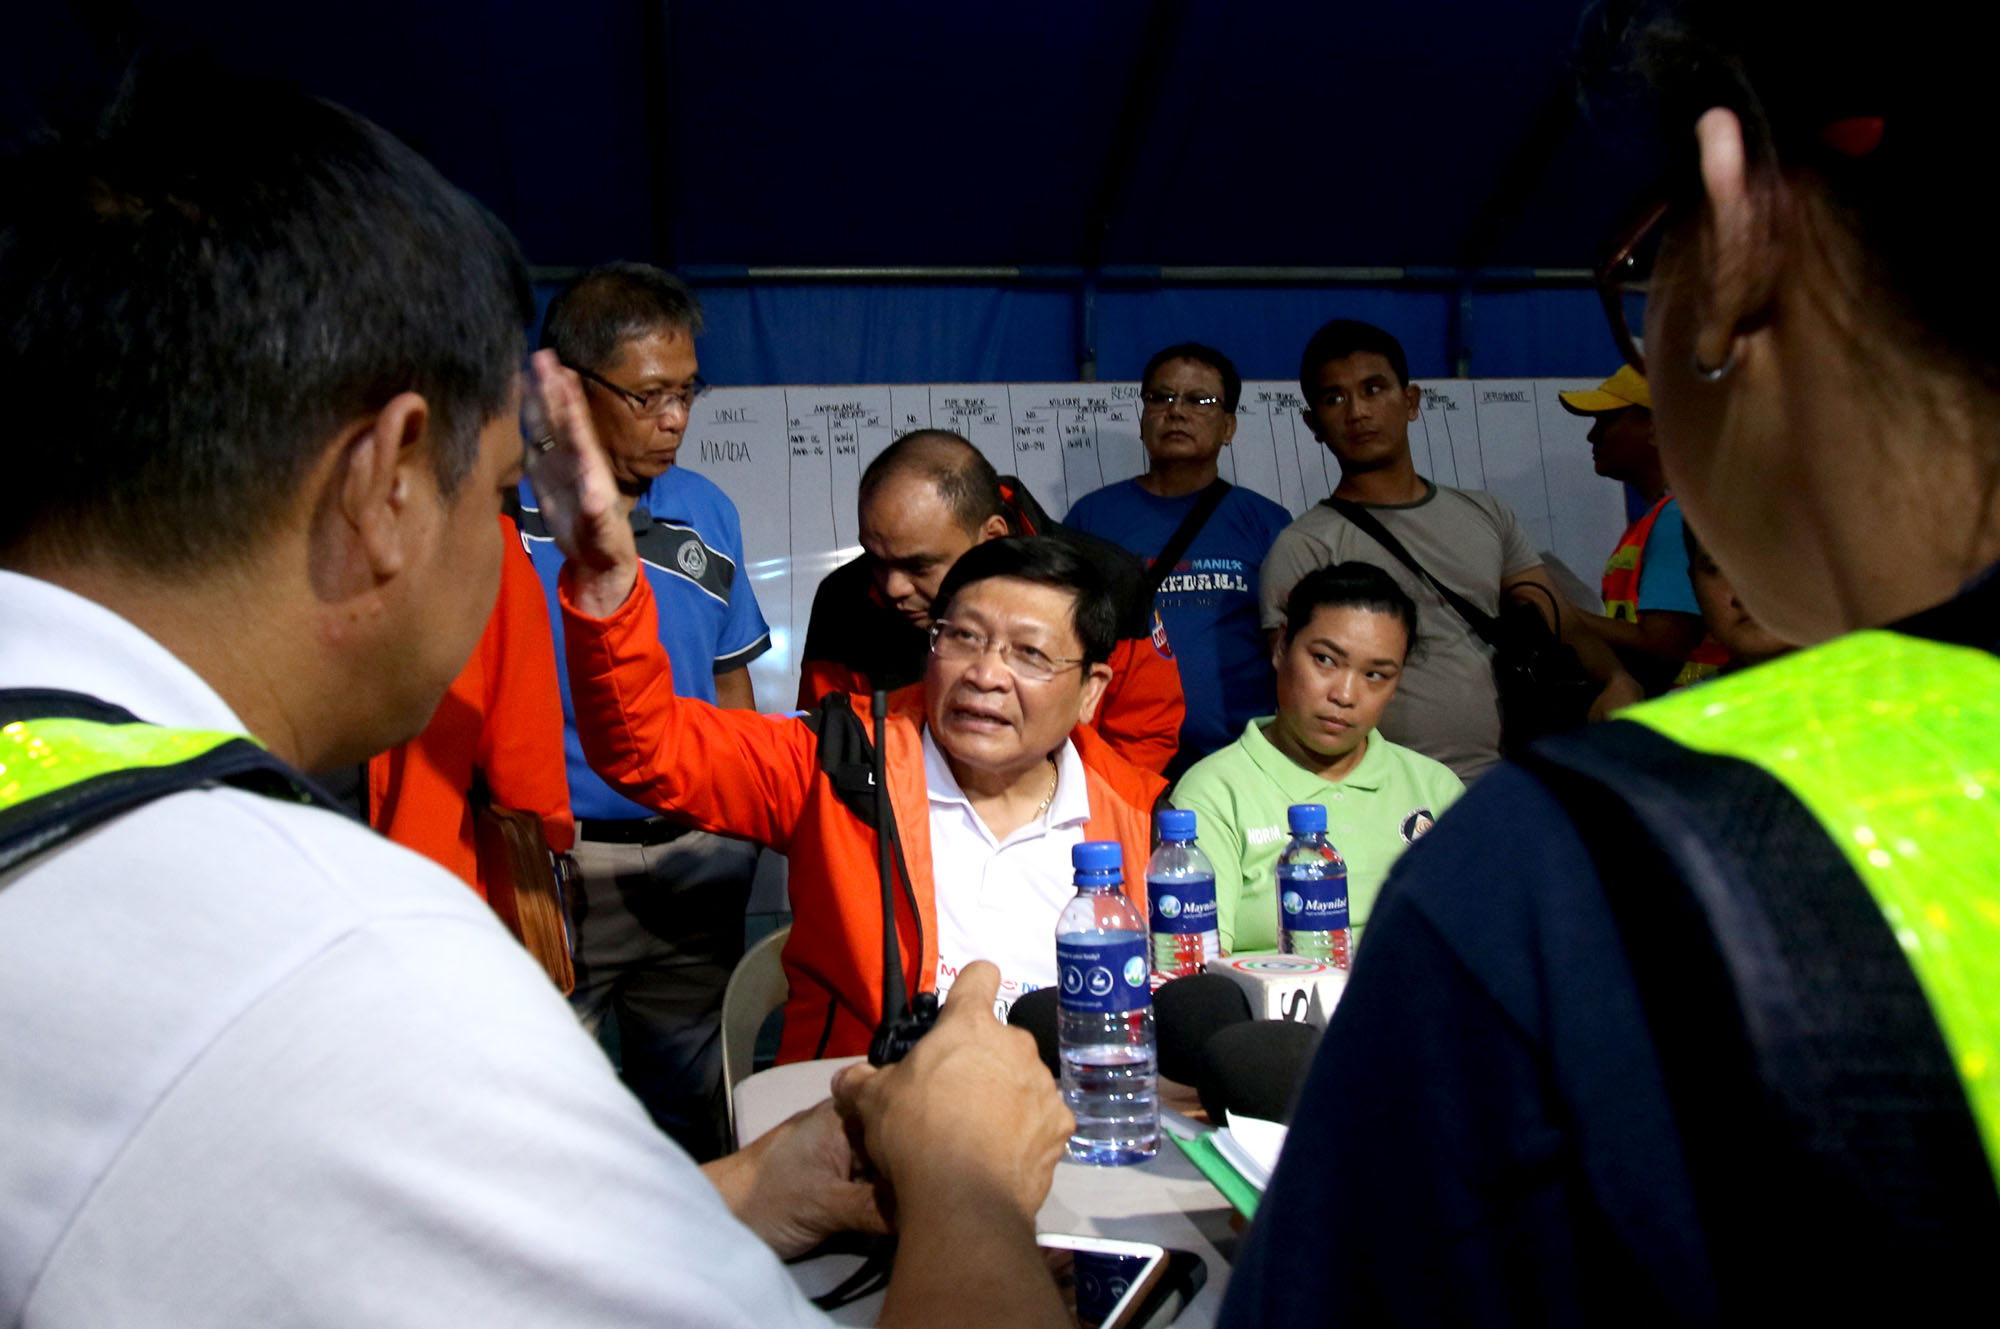 HEADQUARTERS. MMDA Chairman Danilo Lim assesses the situation with affected LGUs. Photo by Inoue Jaena/Rappler